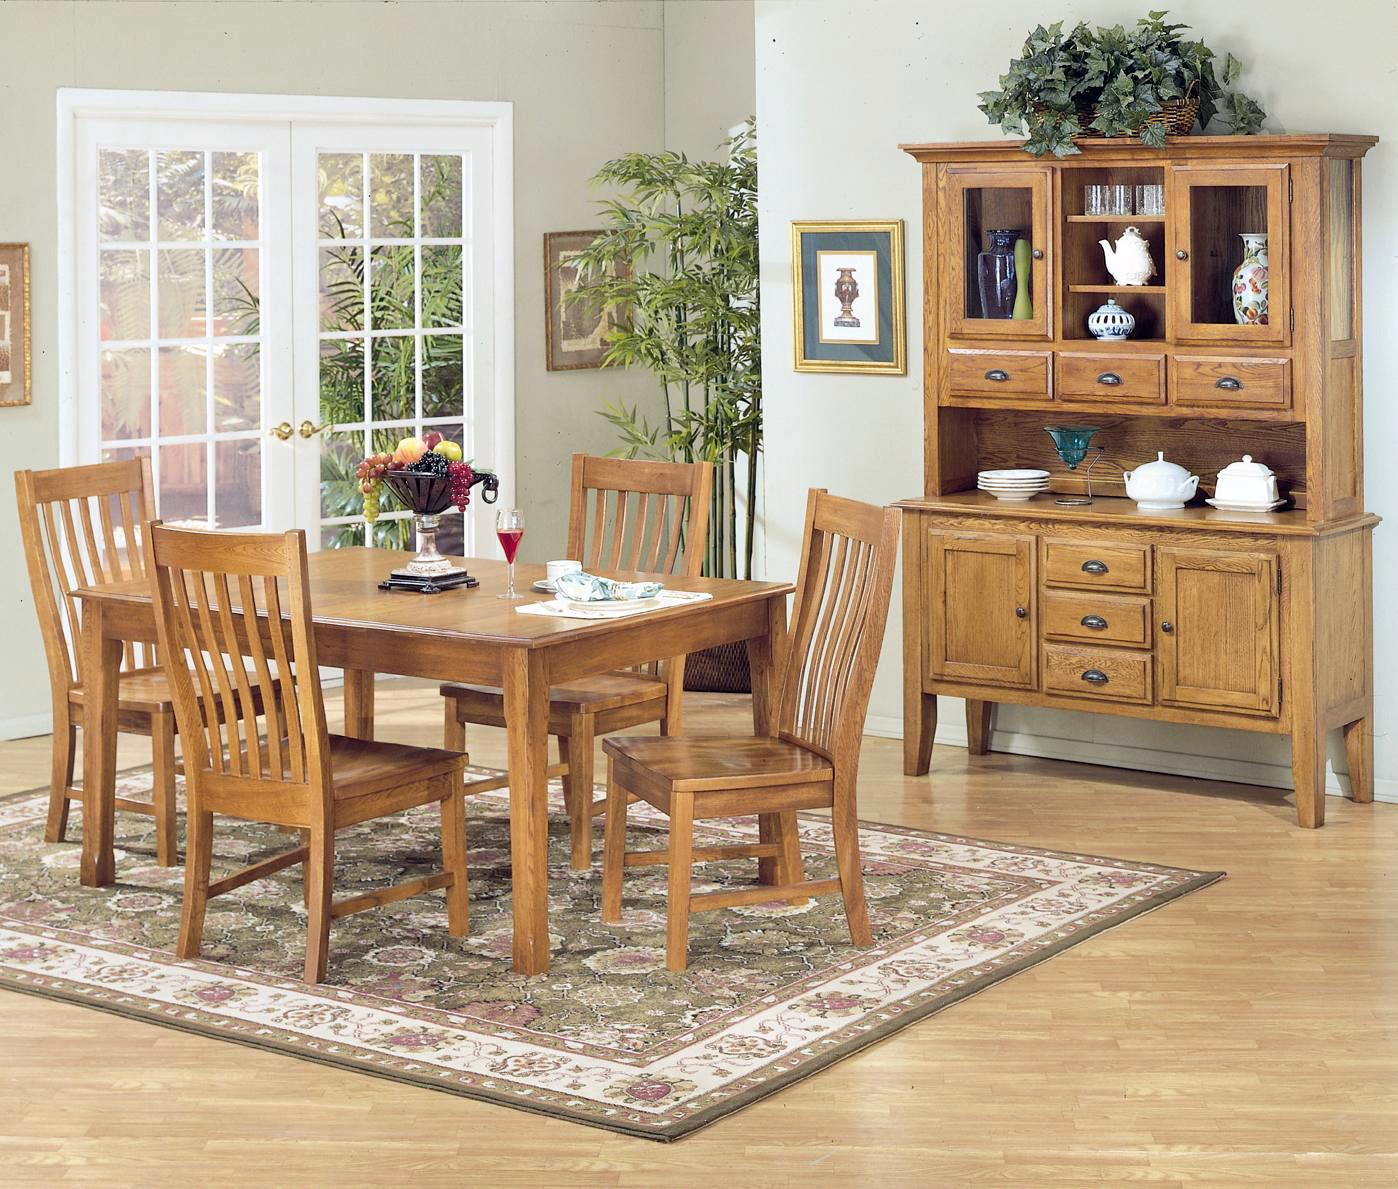 5 Piece Rectangular Dining Table Set